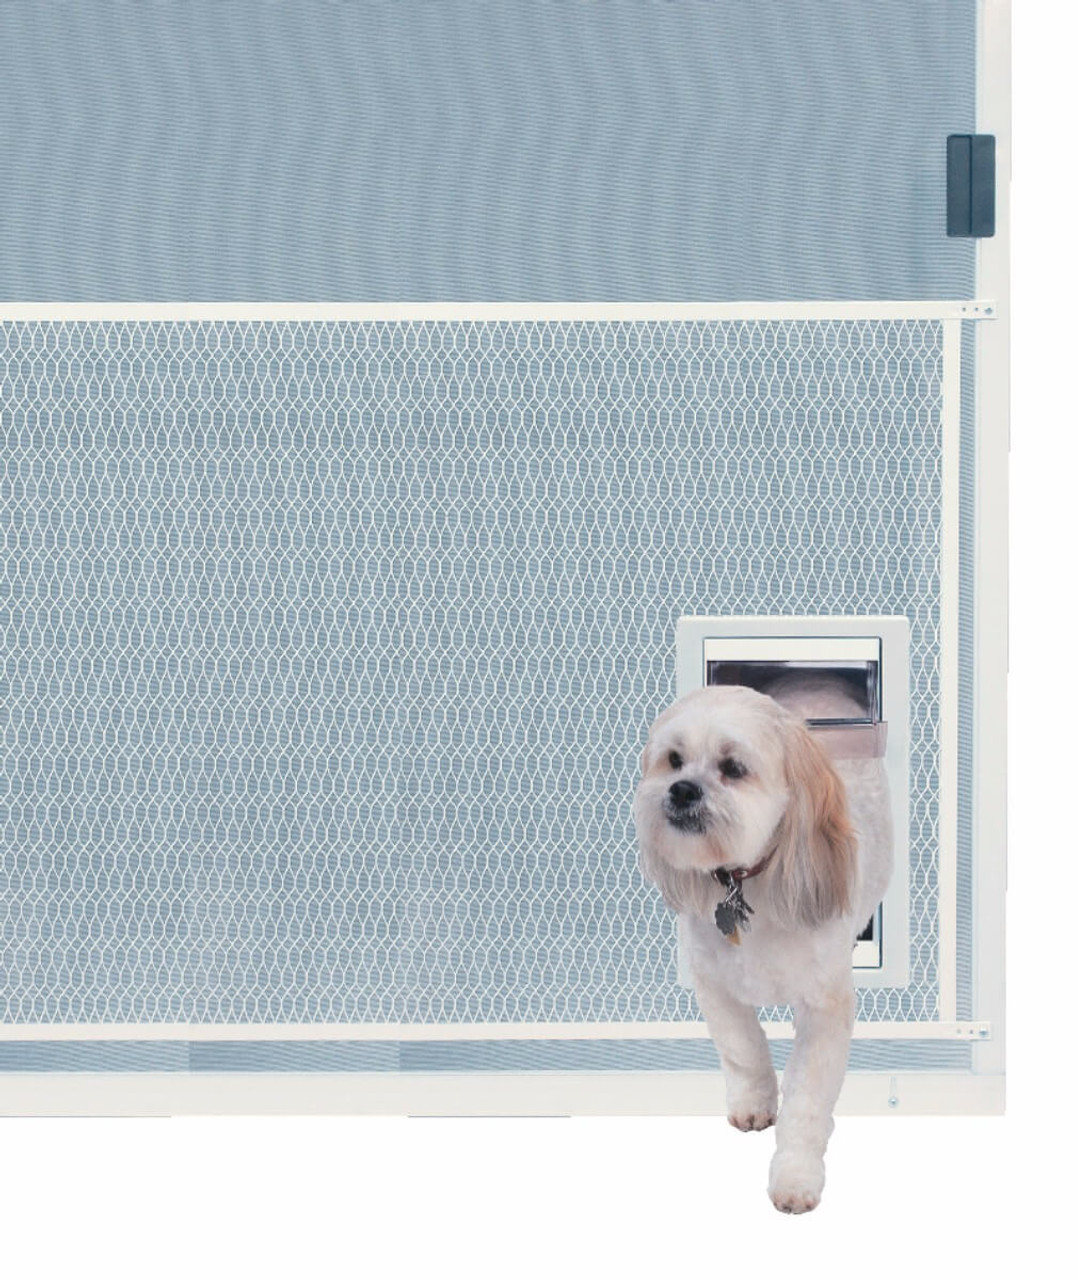 Ideal Screen Guard Pet Doors Attach To The Mesh Protective Guard That  Covers The Lower Half